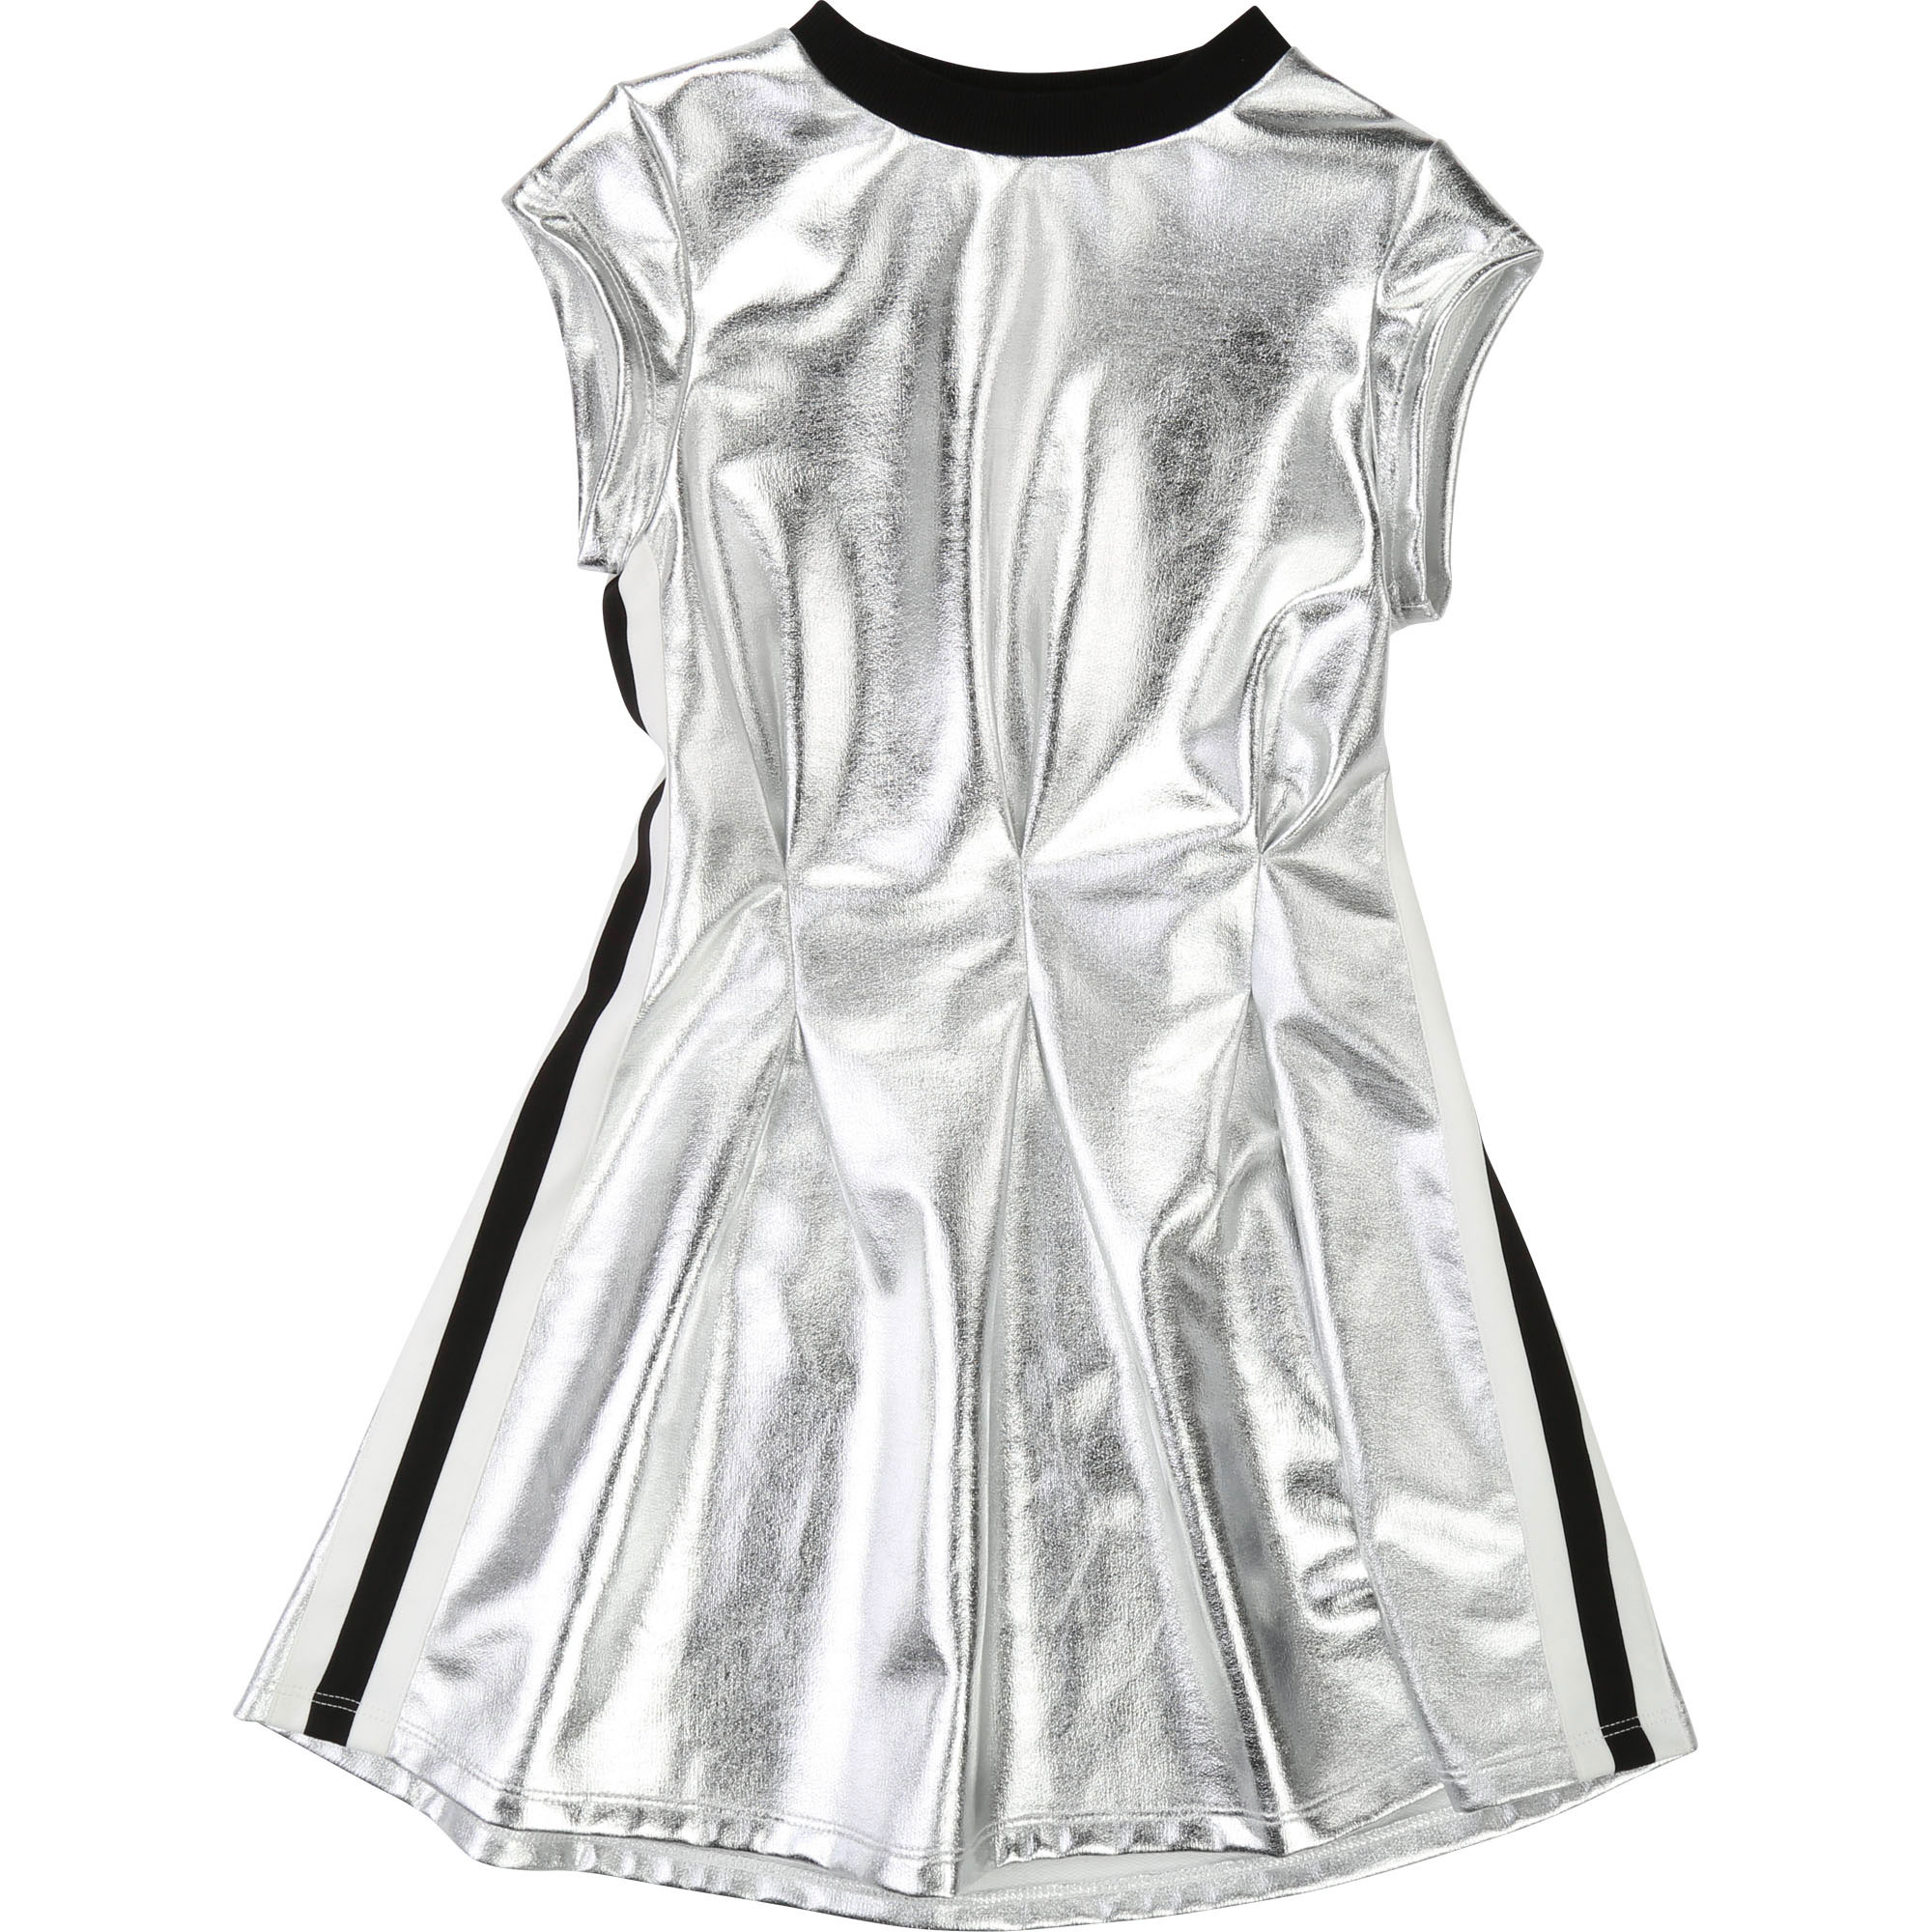 Silver dress with stripes DKNY for GIRL